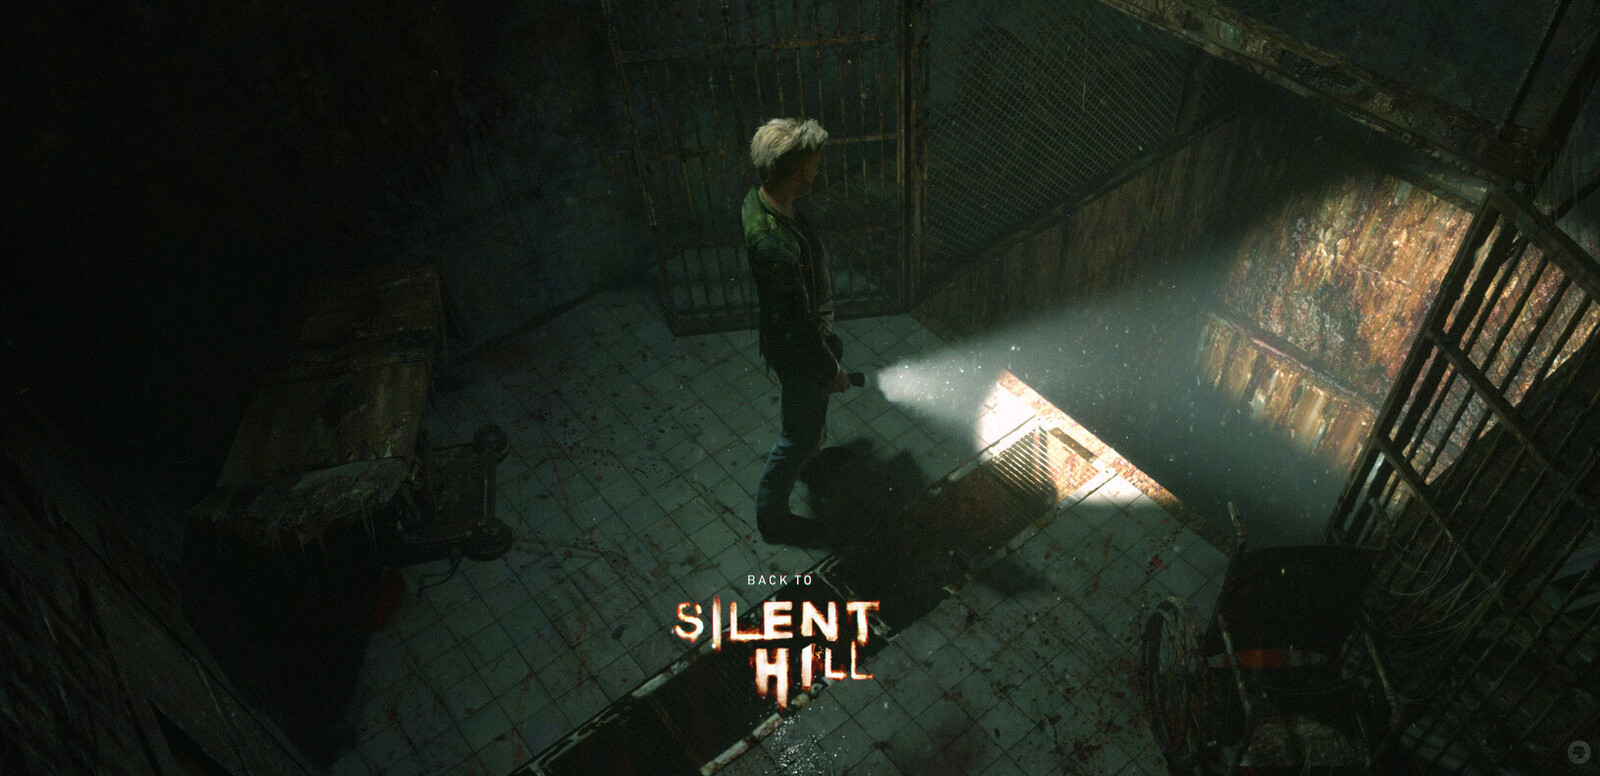 Back to Silent Hill